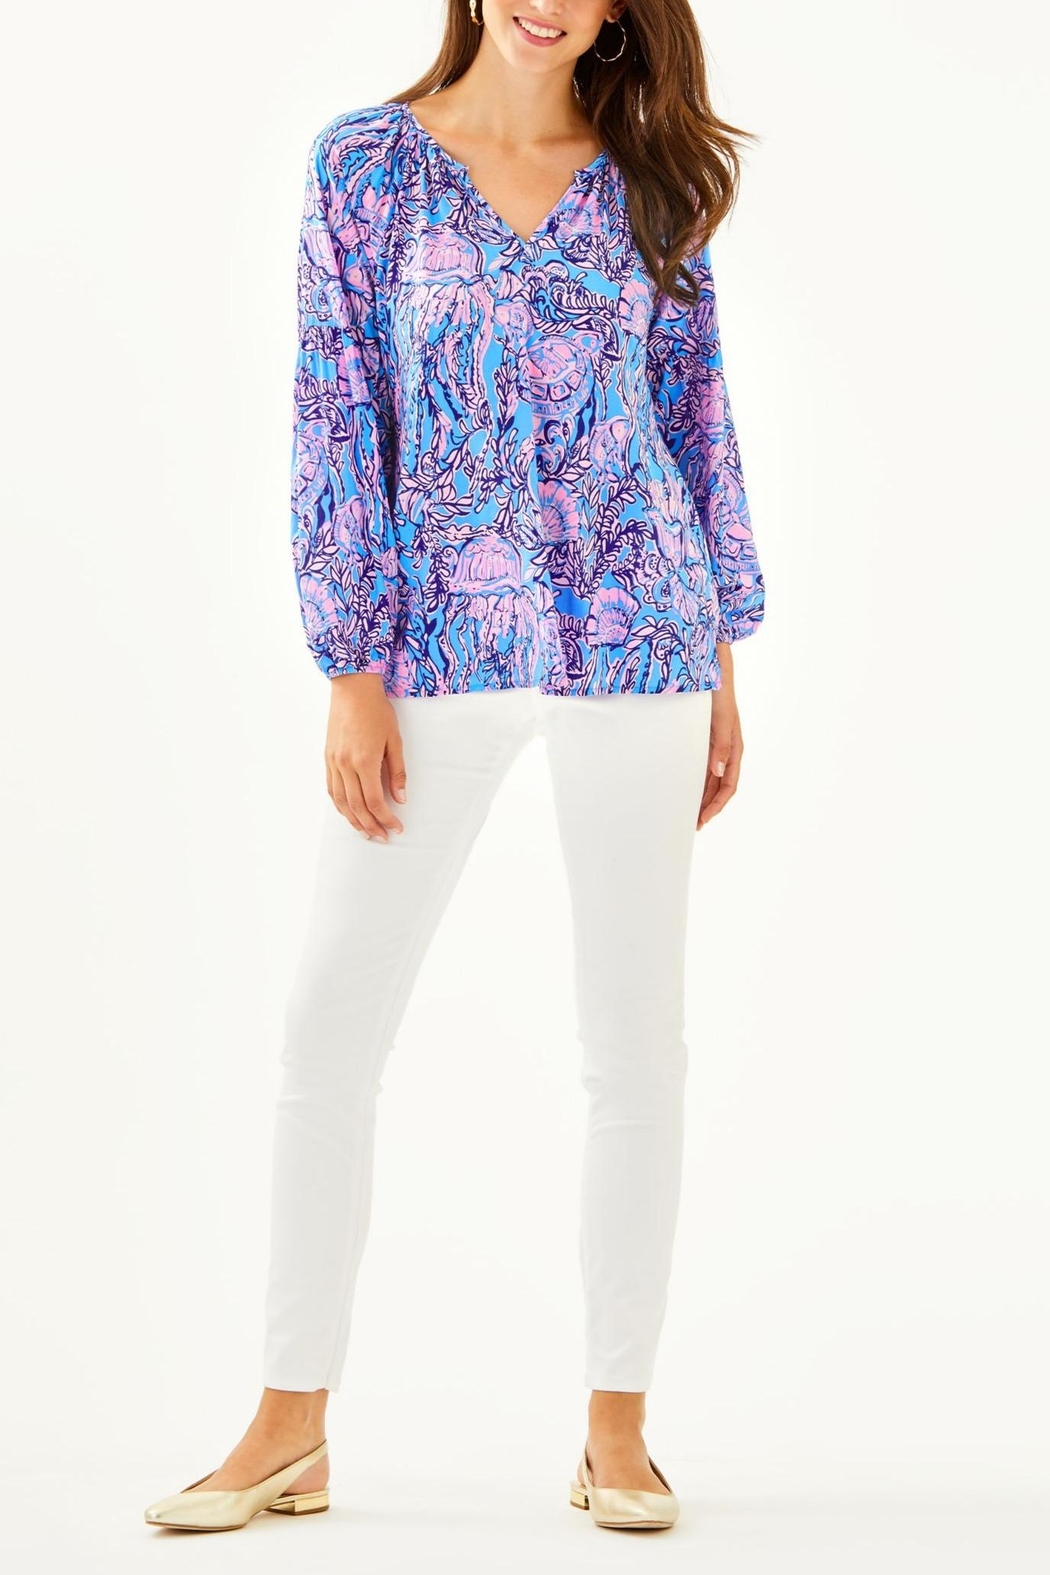 Lilly Pulitzer Winsley Top - Side Cropped Image